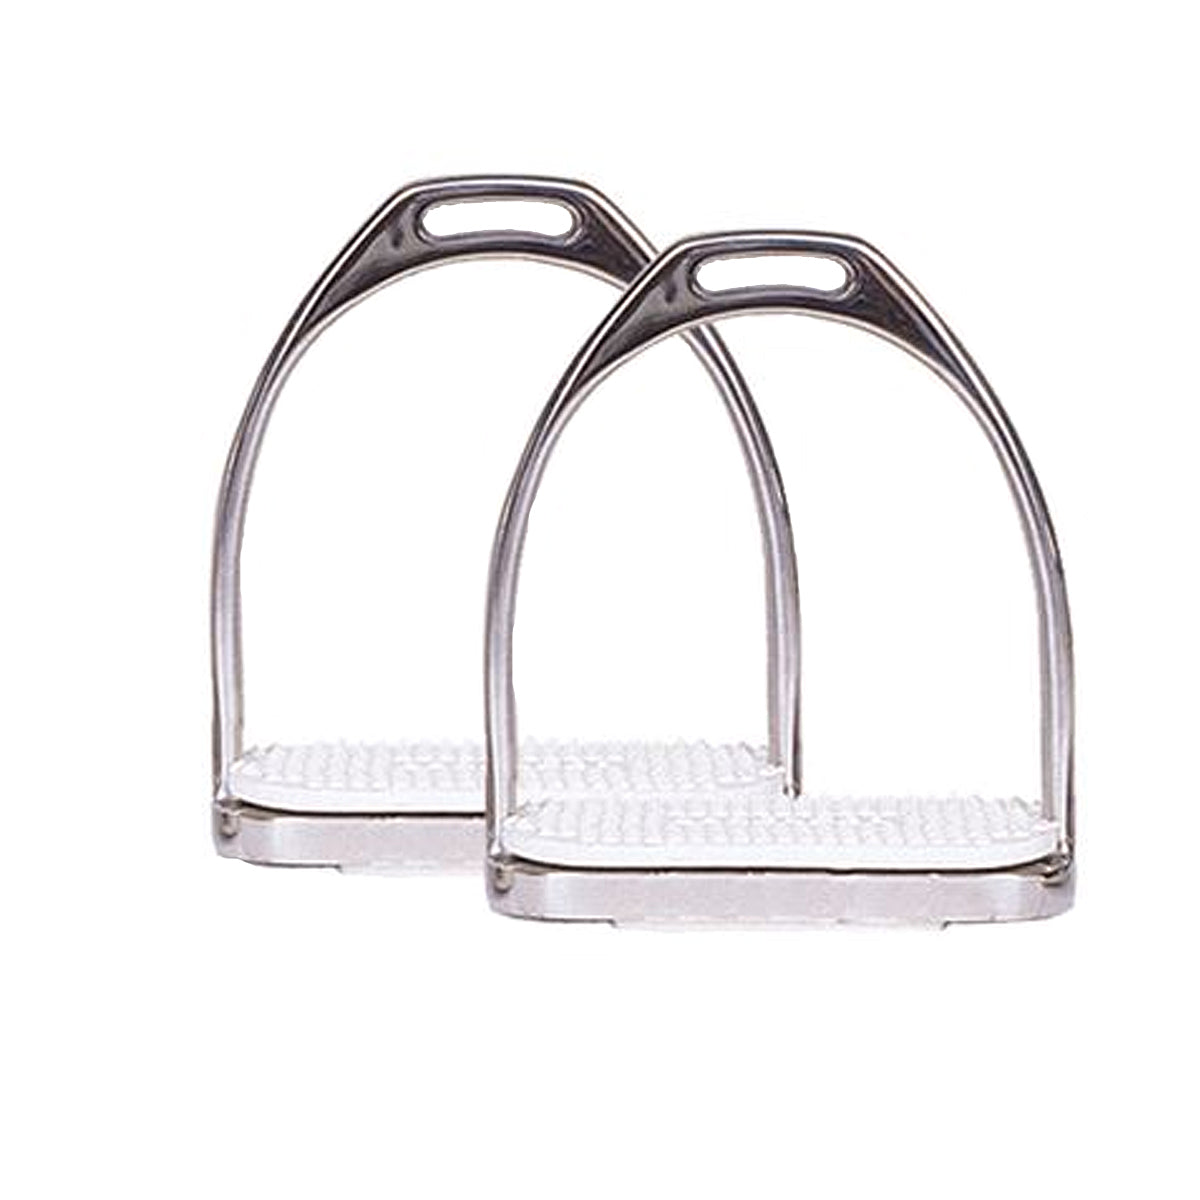 Perri's Stainless Steel Fillis Stirrup Iron